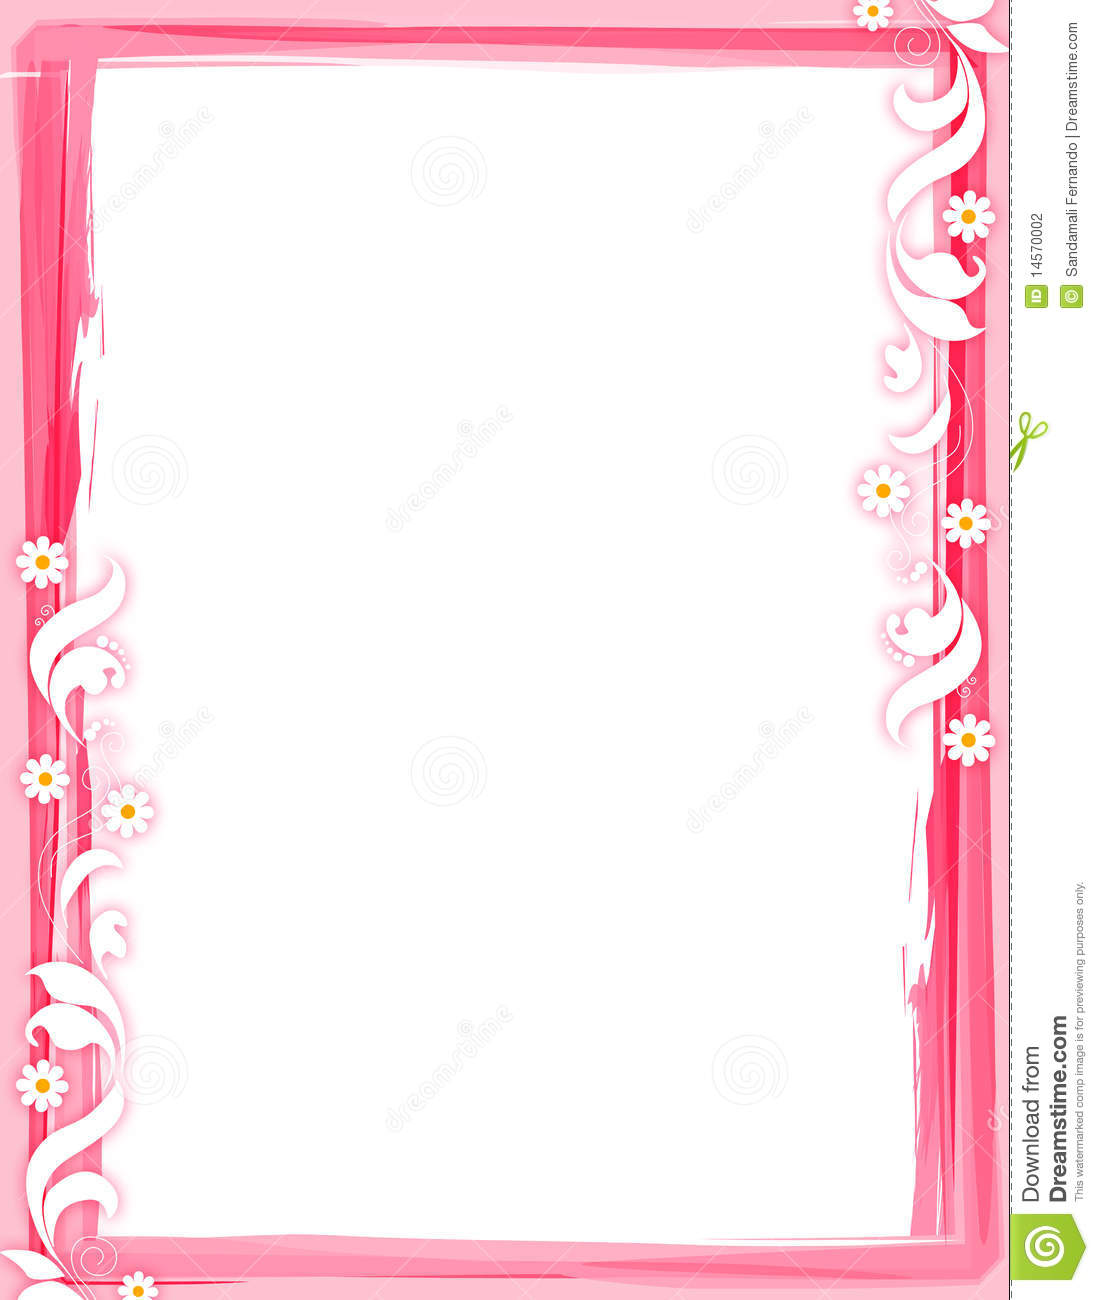 Cute Letter M Wallpaper Floral Border Red Stock Photography Image 14570002